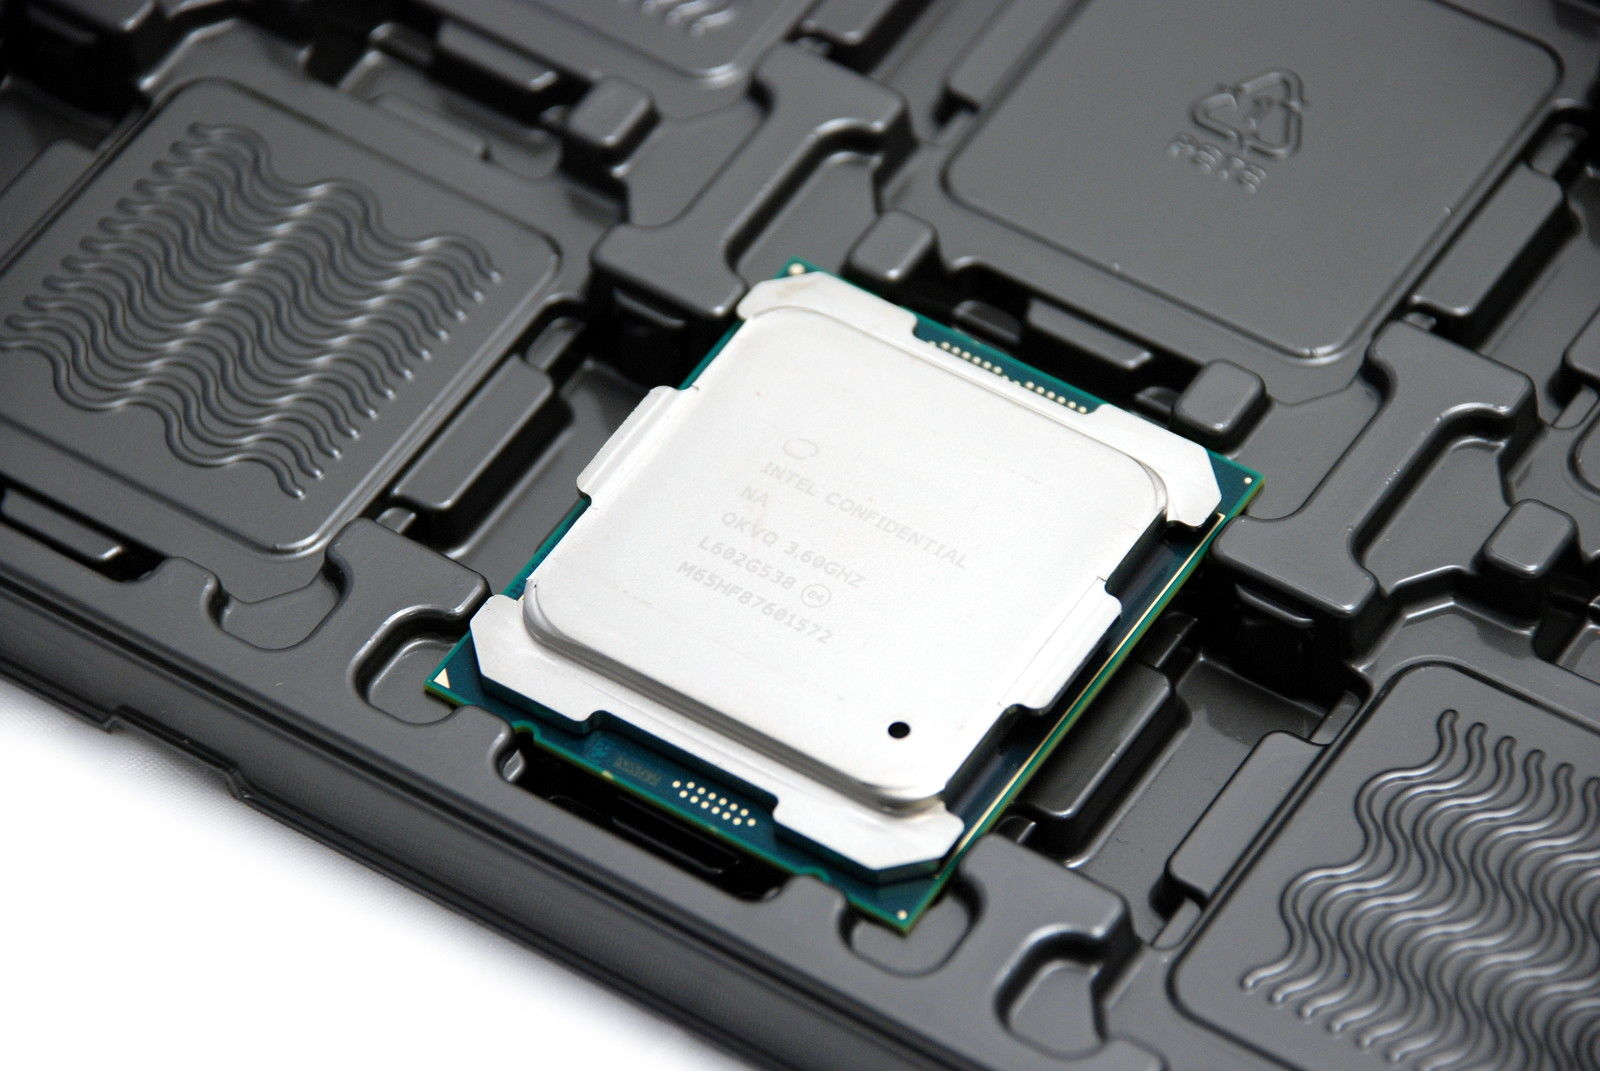 Photo of New Extreme Processors in Premiere: Official Details on Broadwell-E leaked to network a few days before exposure